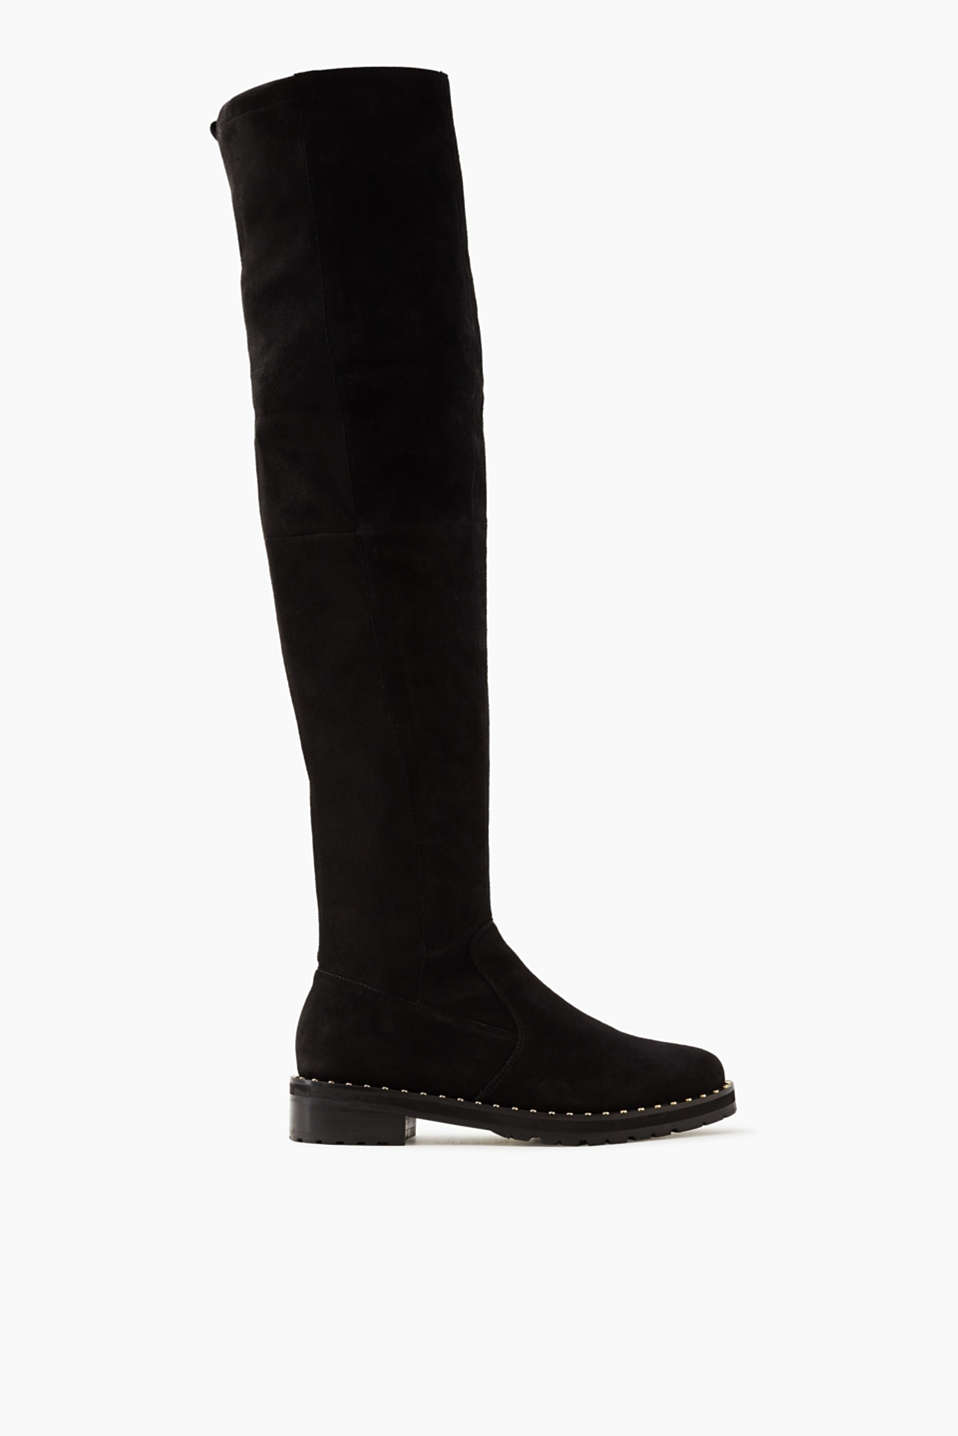 Stylish and eye-catching! Over-the-knee boots are one of the biggest footwear trends this season.